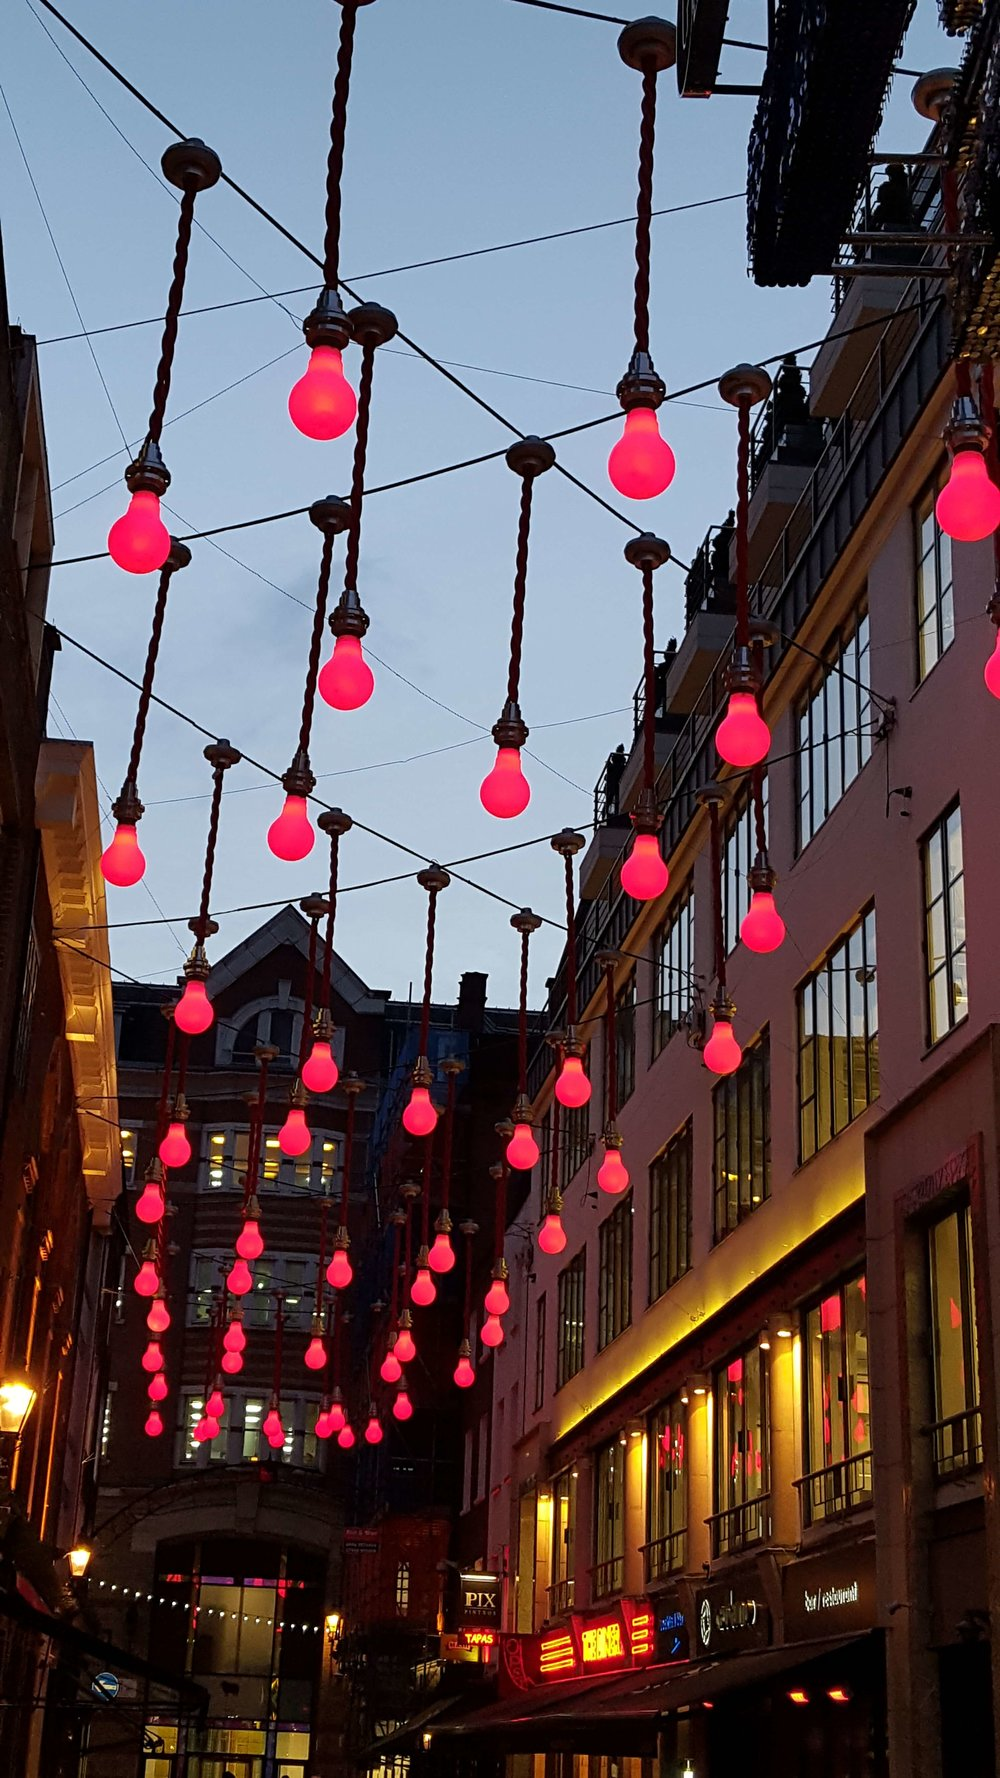 London is a magical place, with inspirational settings for writers. This is an alleyway near Regent's Street covered with red light bulbs. Let your imagination be stimulated in this city, triggering ideas of environments for your own writing.